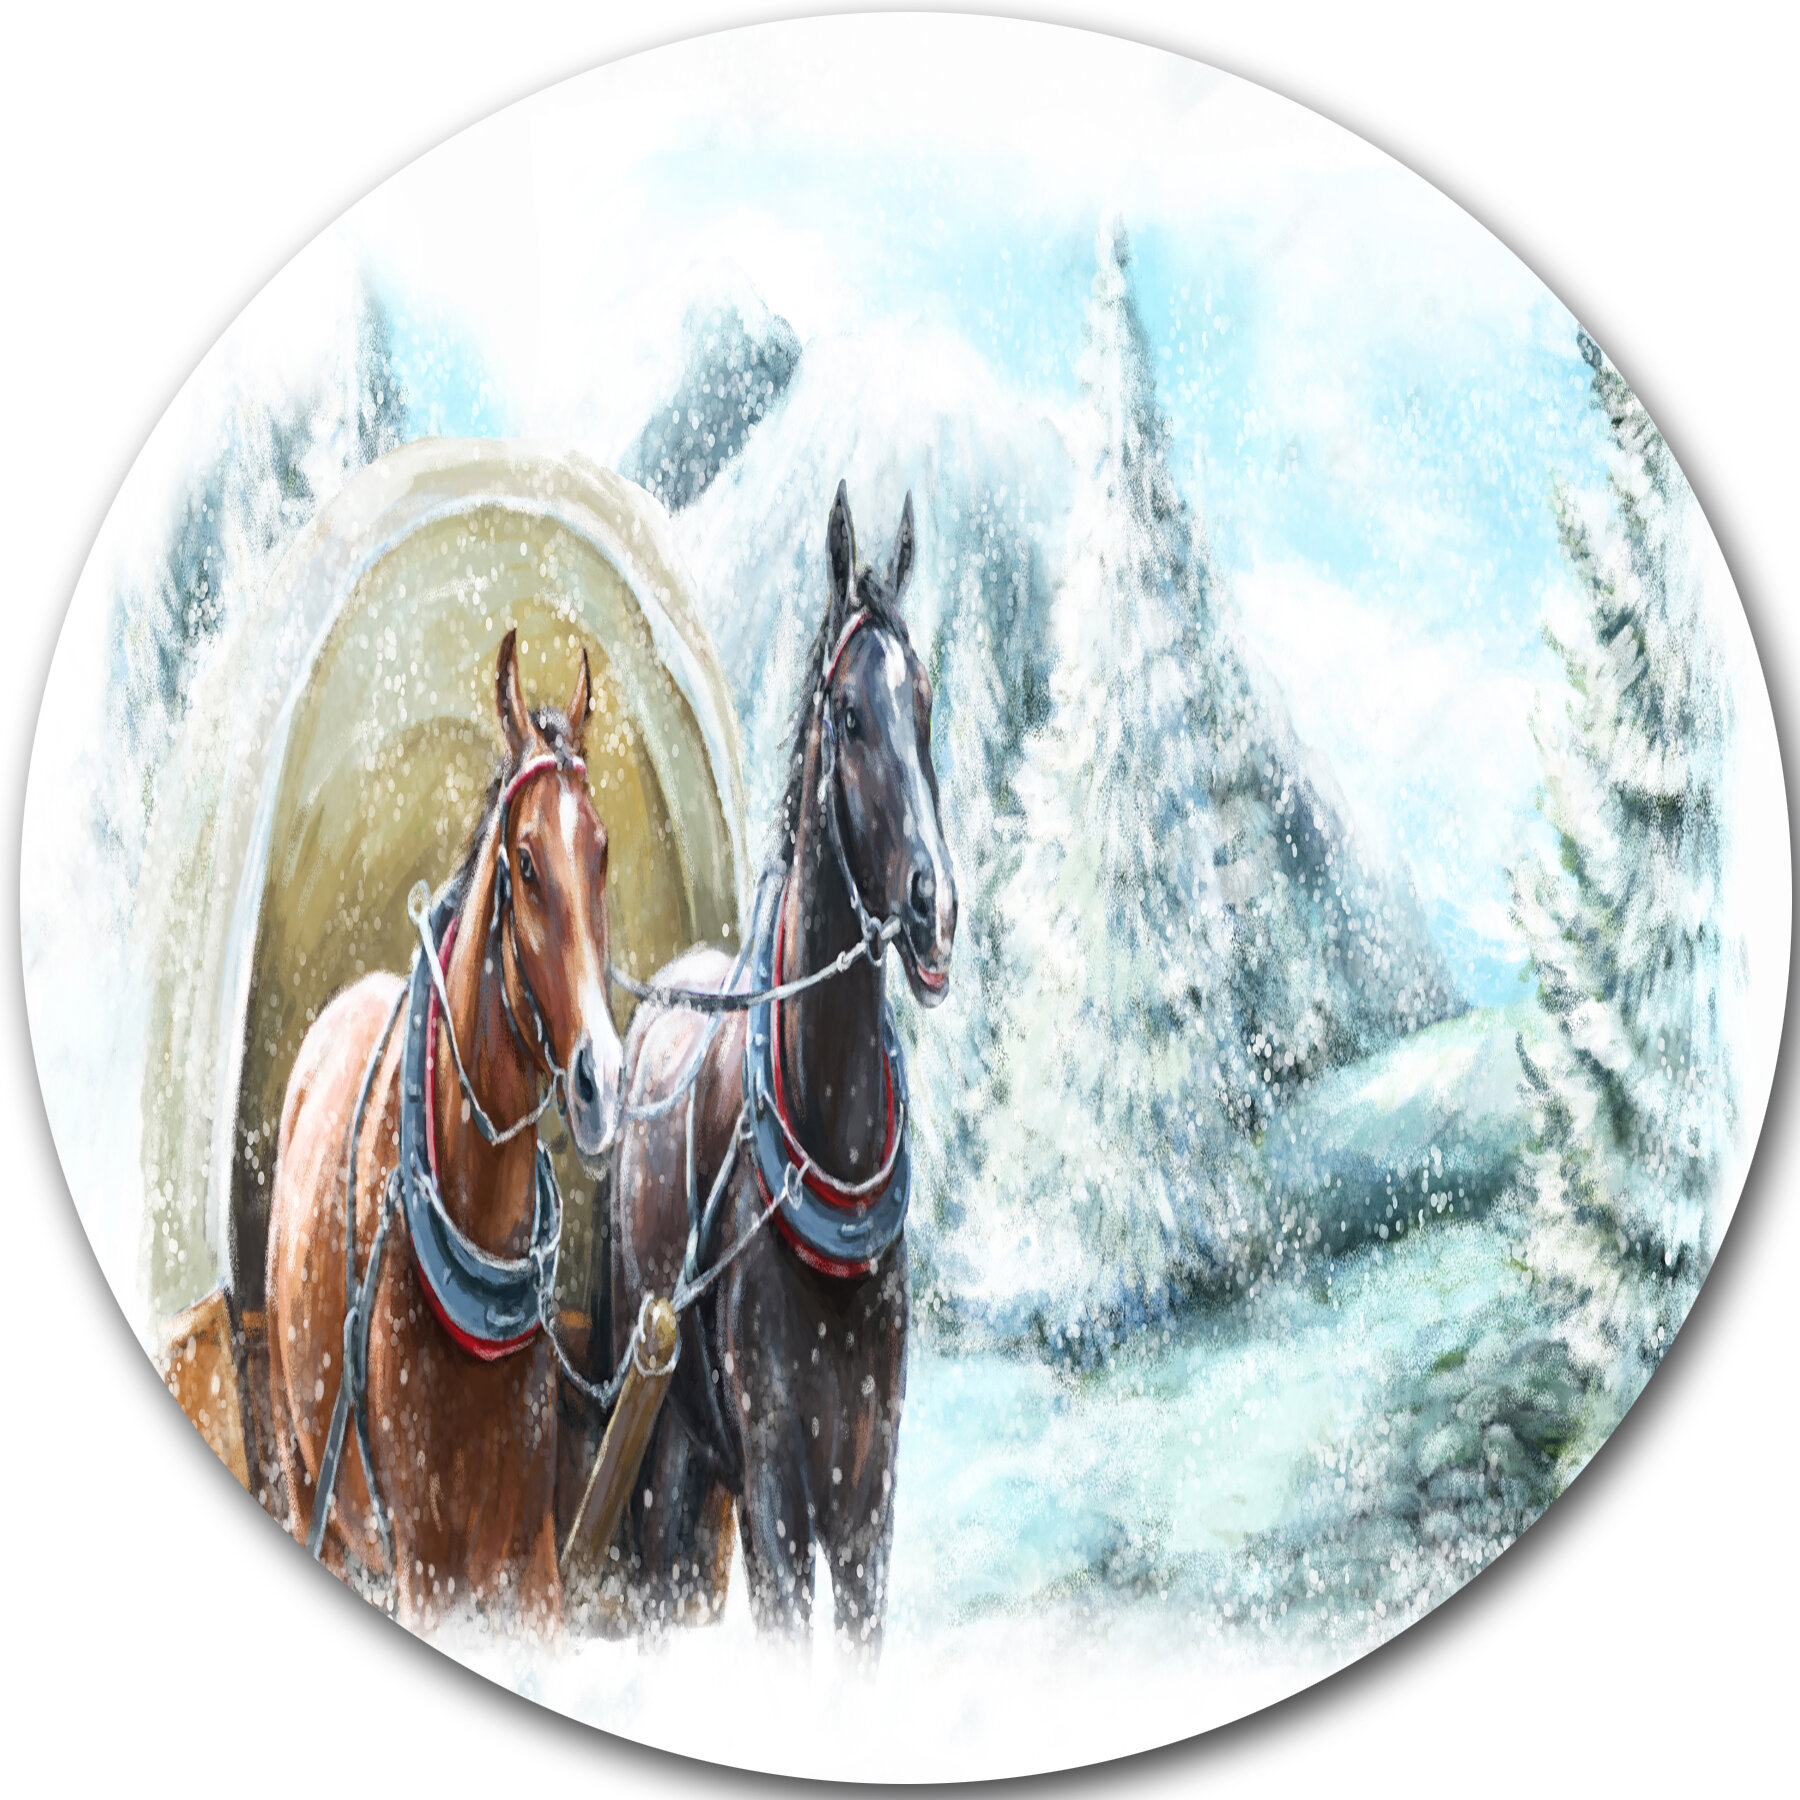 Designart Painted Scene With Horses In Winter Photographic Print On Metal Wayfair